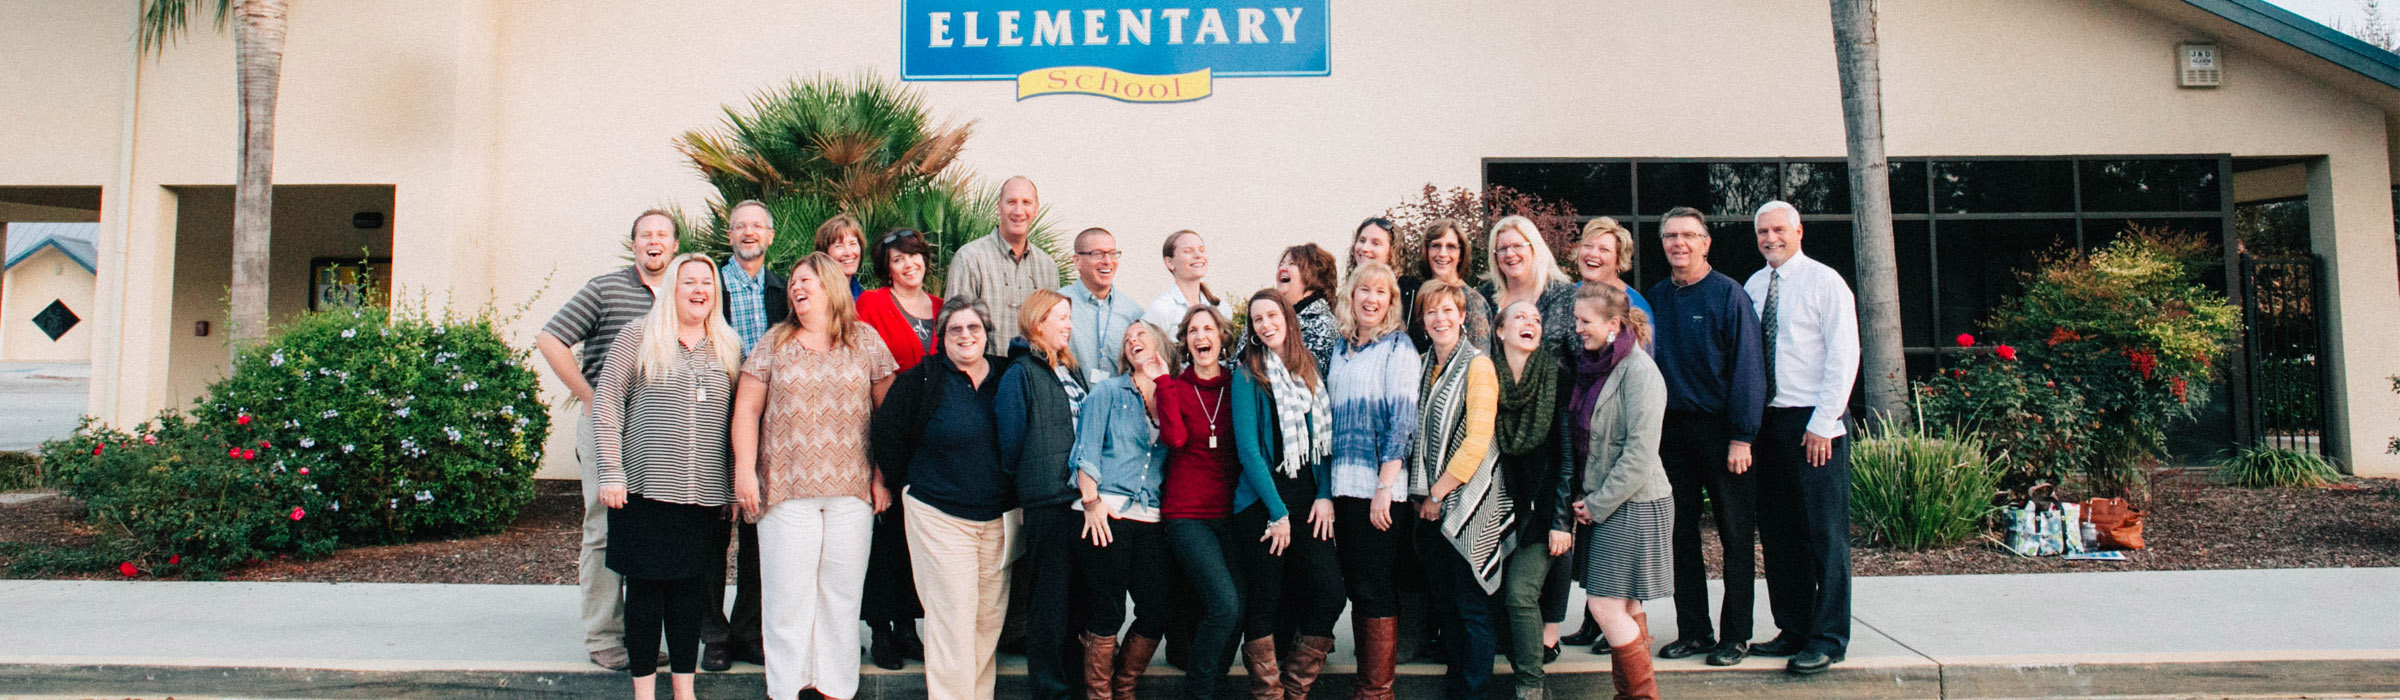 a0eb05fca0a elem faculty banner 3. Elementary faculty at Central Valley Christian School